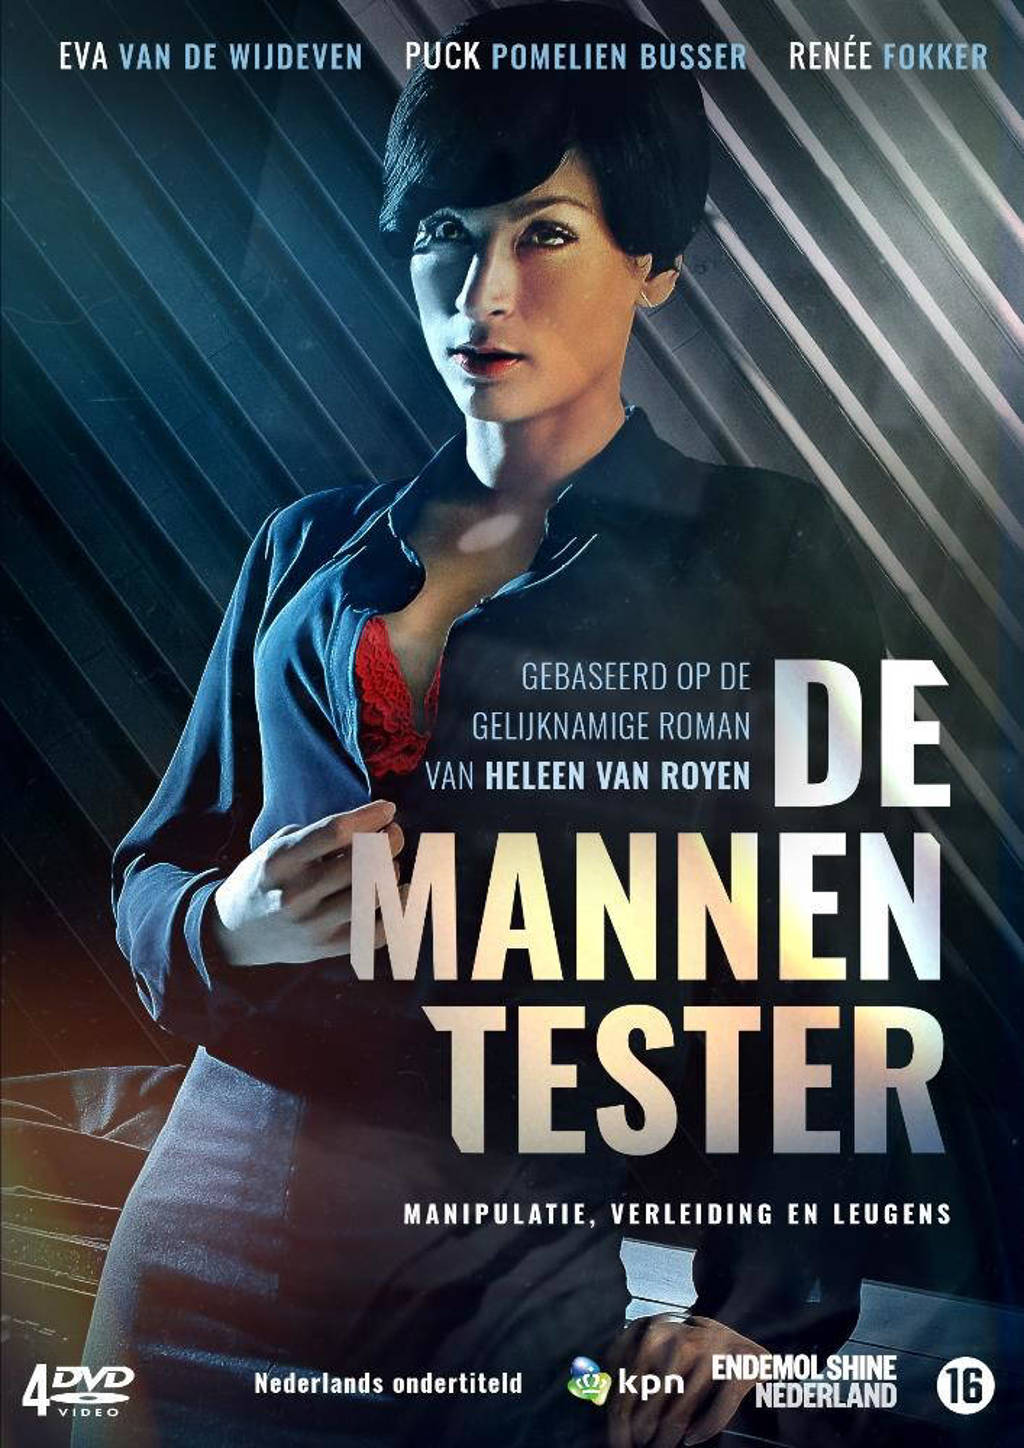 Mannentester (DVD)